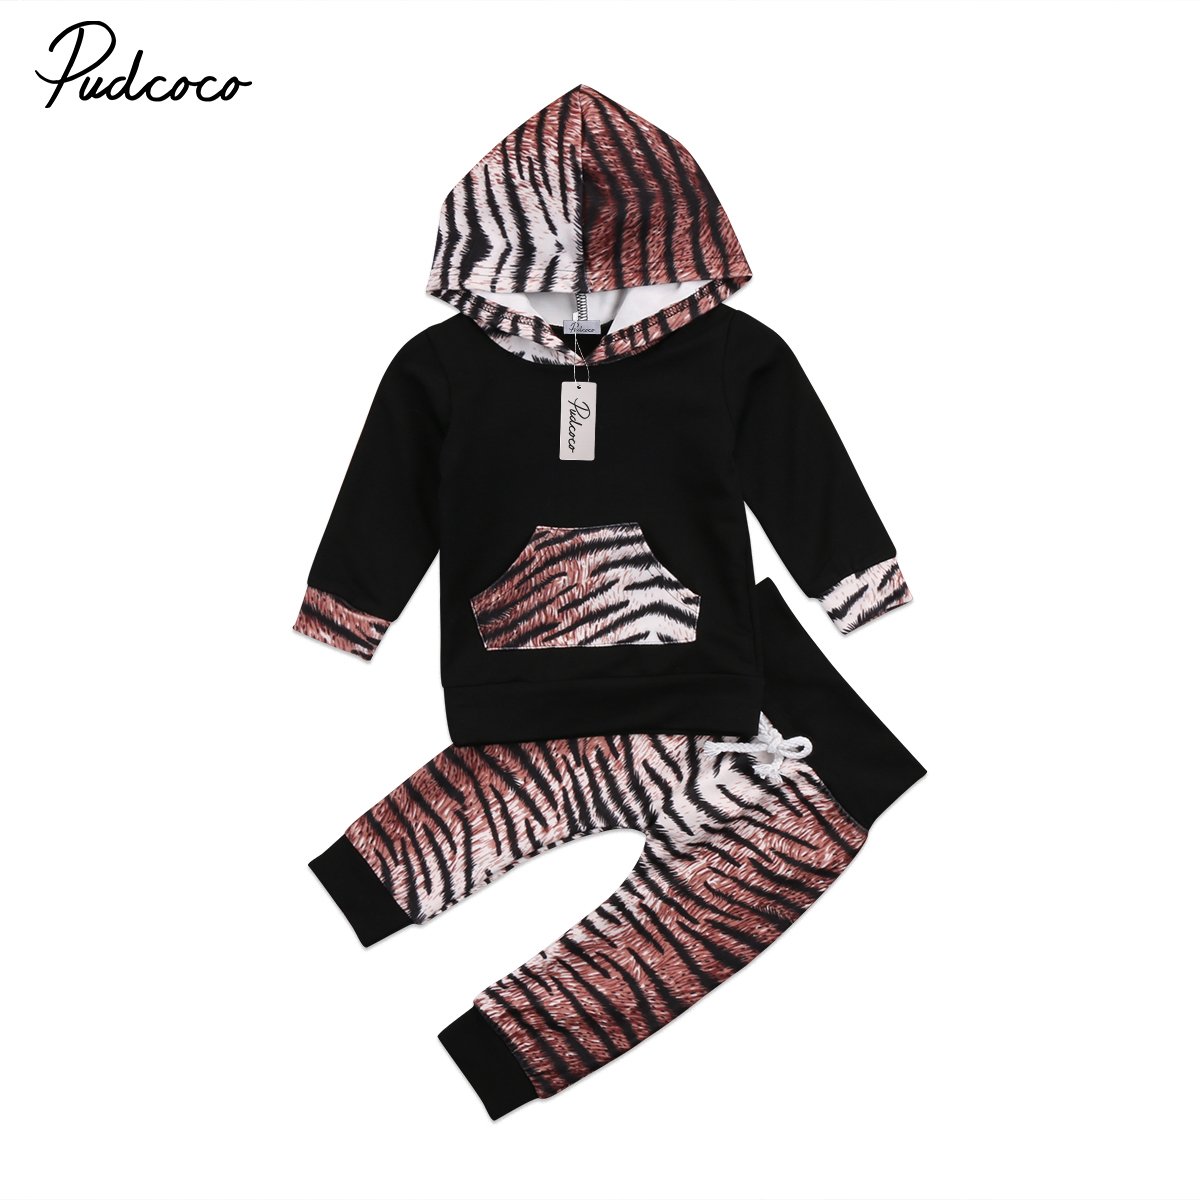 Pudcoco 2Pcs Newborn Baby Boys Girl Unisex Clothes Long Sleeve Hooded Long Pants Outfits Set 0-24Months Helen115